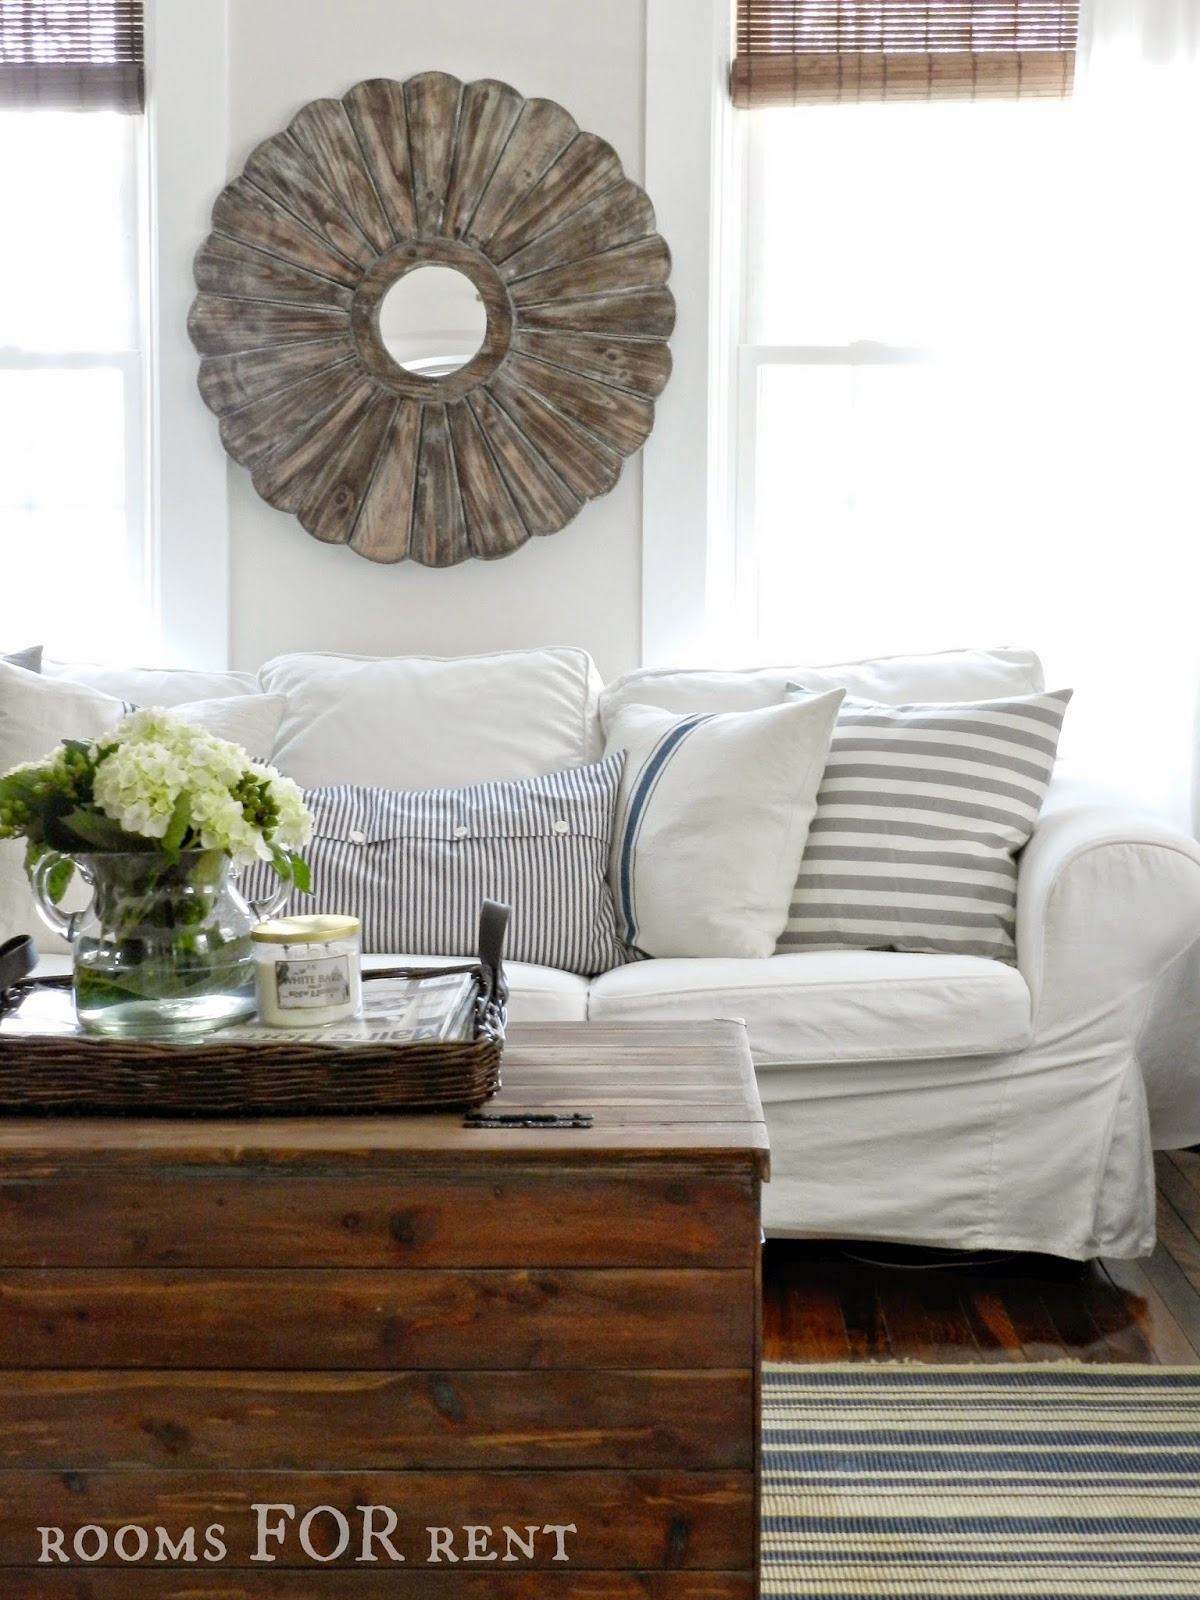 Room For Rent Design: Savvy Southern Style : My Favorite Room....Rooms For Rent